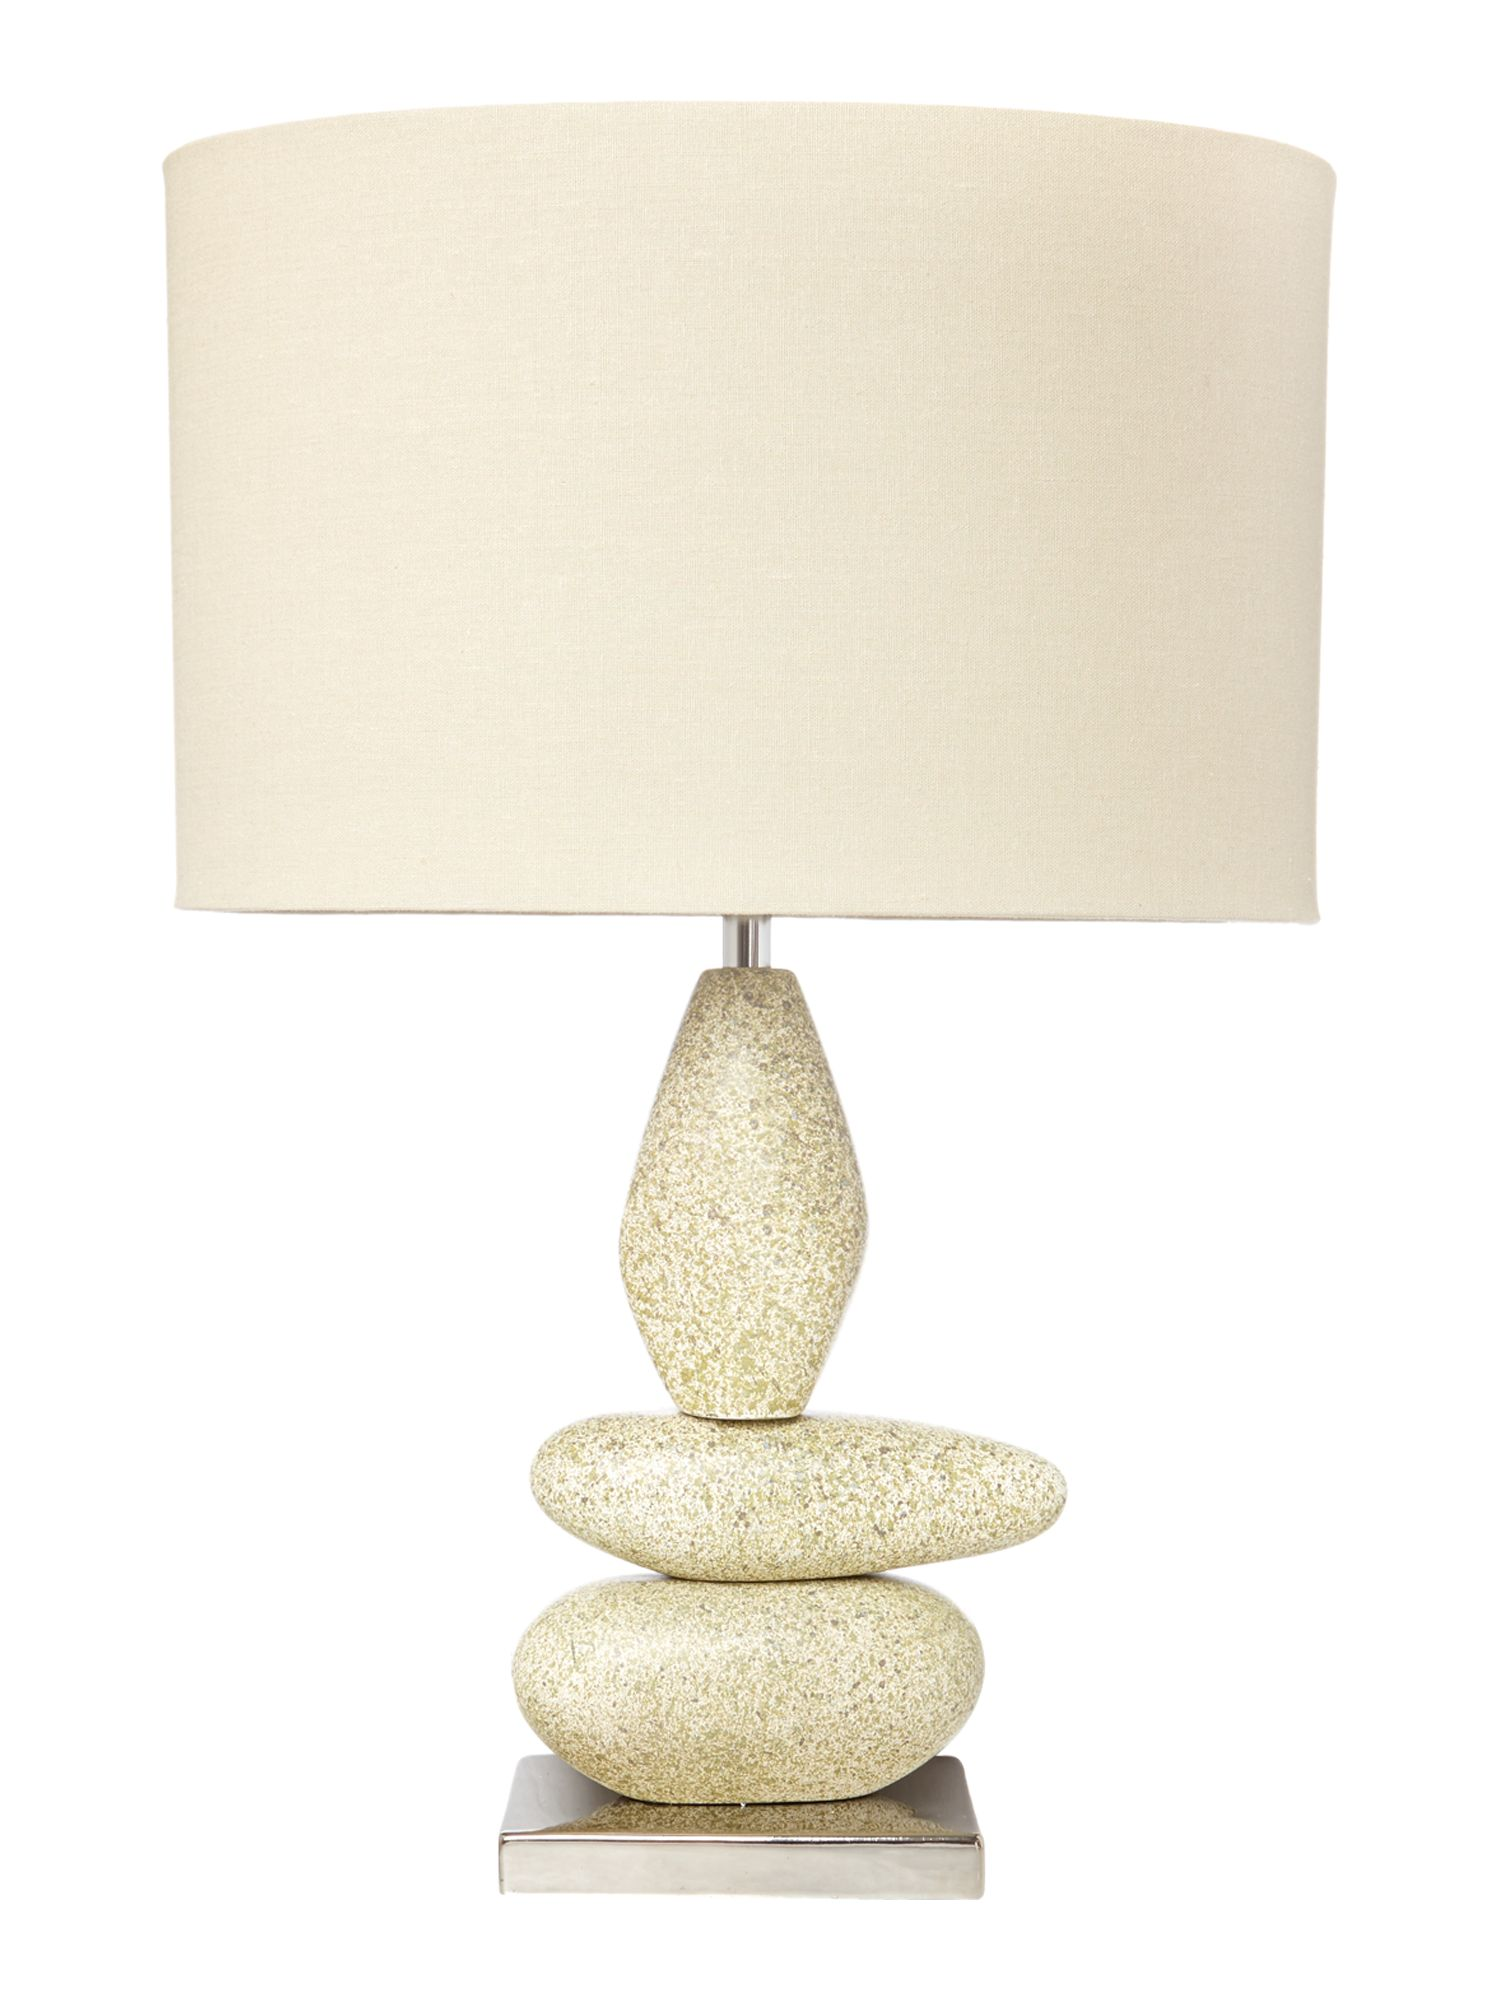 Milford pebble table lamp